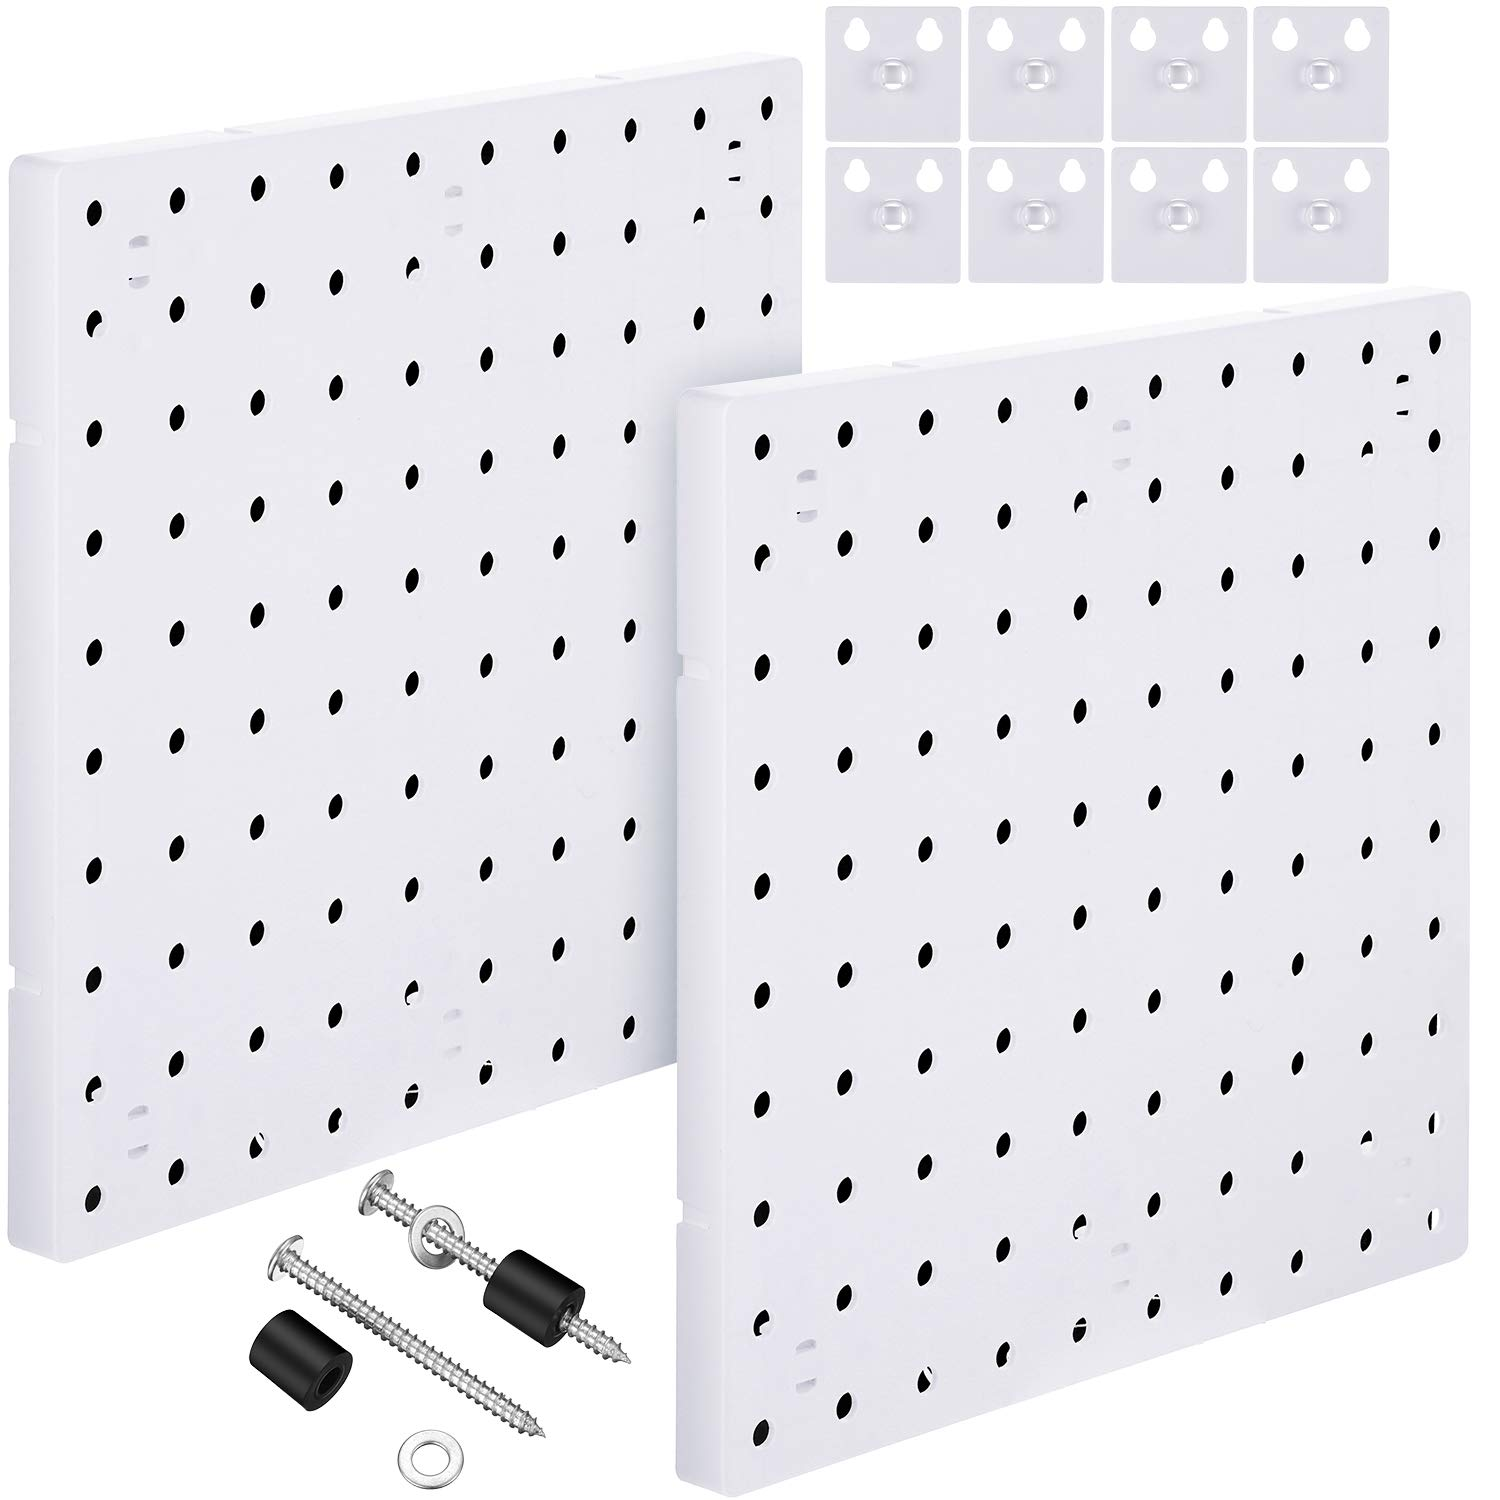 2 Pieces White Pegboard Wall Mount Display Metal Pegboard Wall Panel Kits Peg Board Organizer Accessories, 2 Installation Methods, No Damage to The Wall for Garage Kitchen Bathroom Office